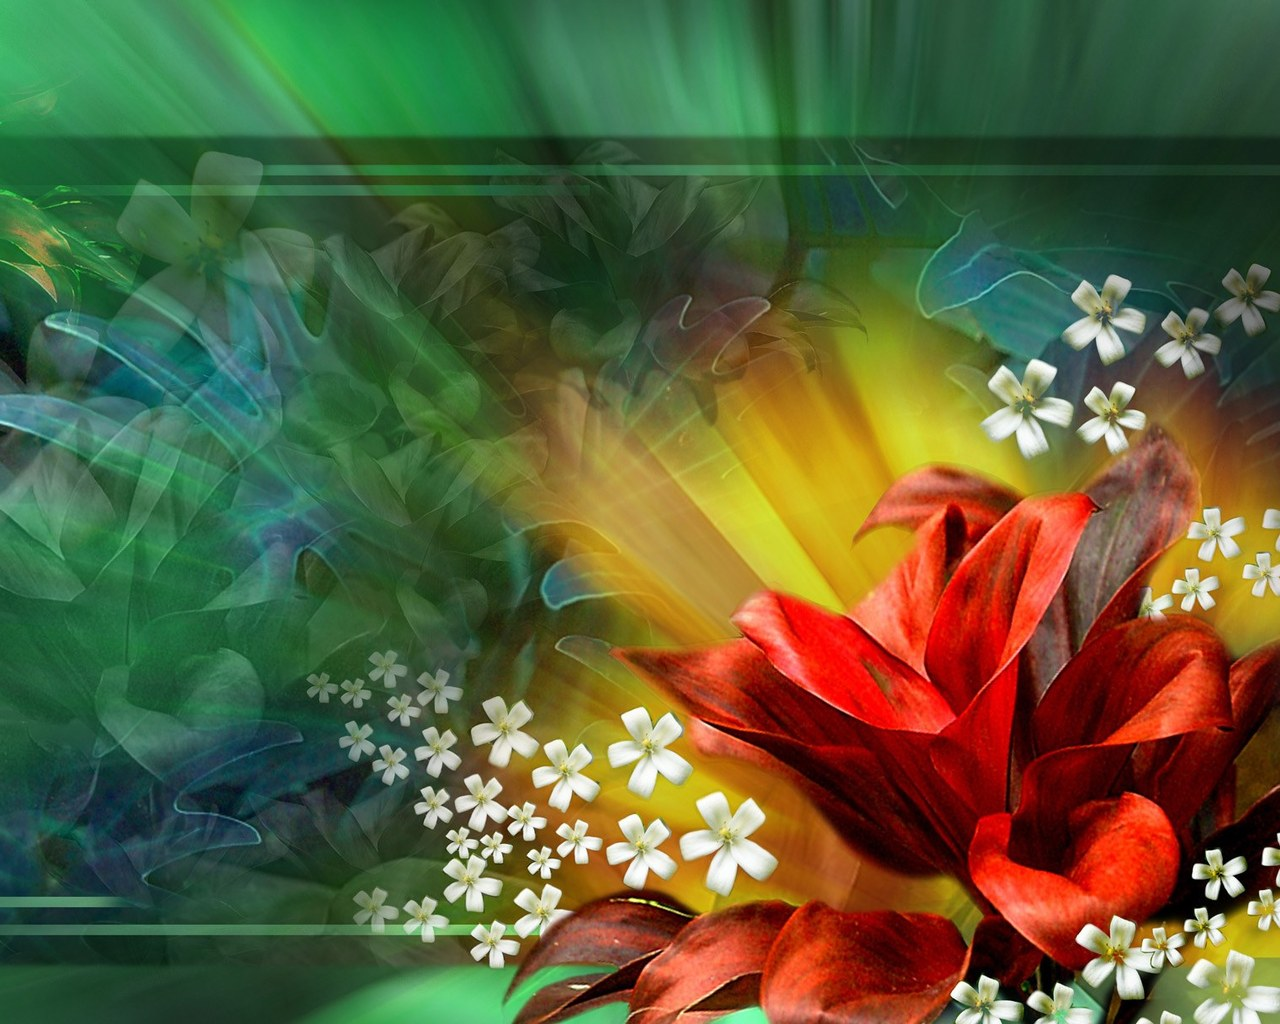 Backgrounds Wallpaper PC 3D Graphics Cherry 3d wallpaper 1280x1024